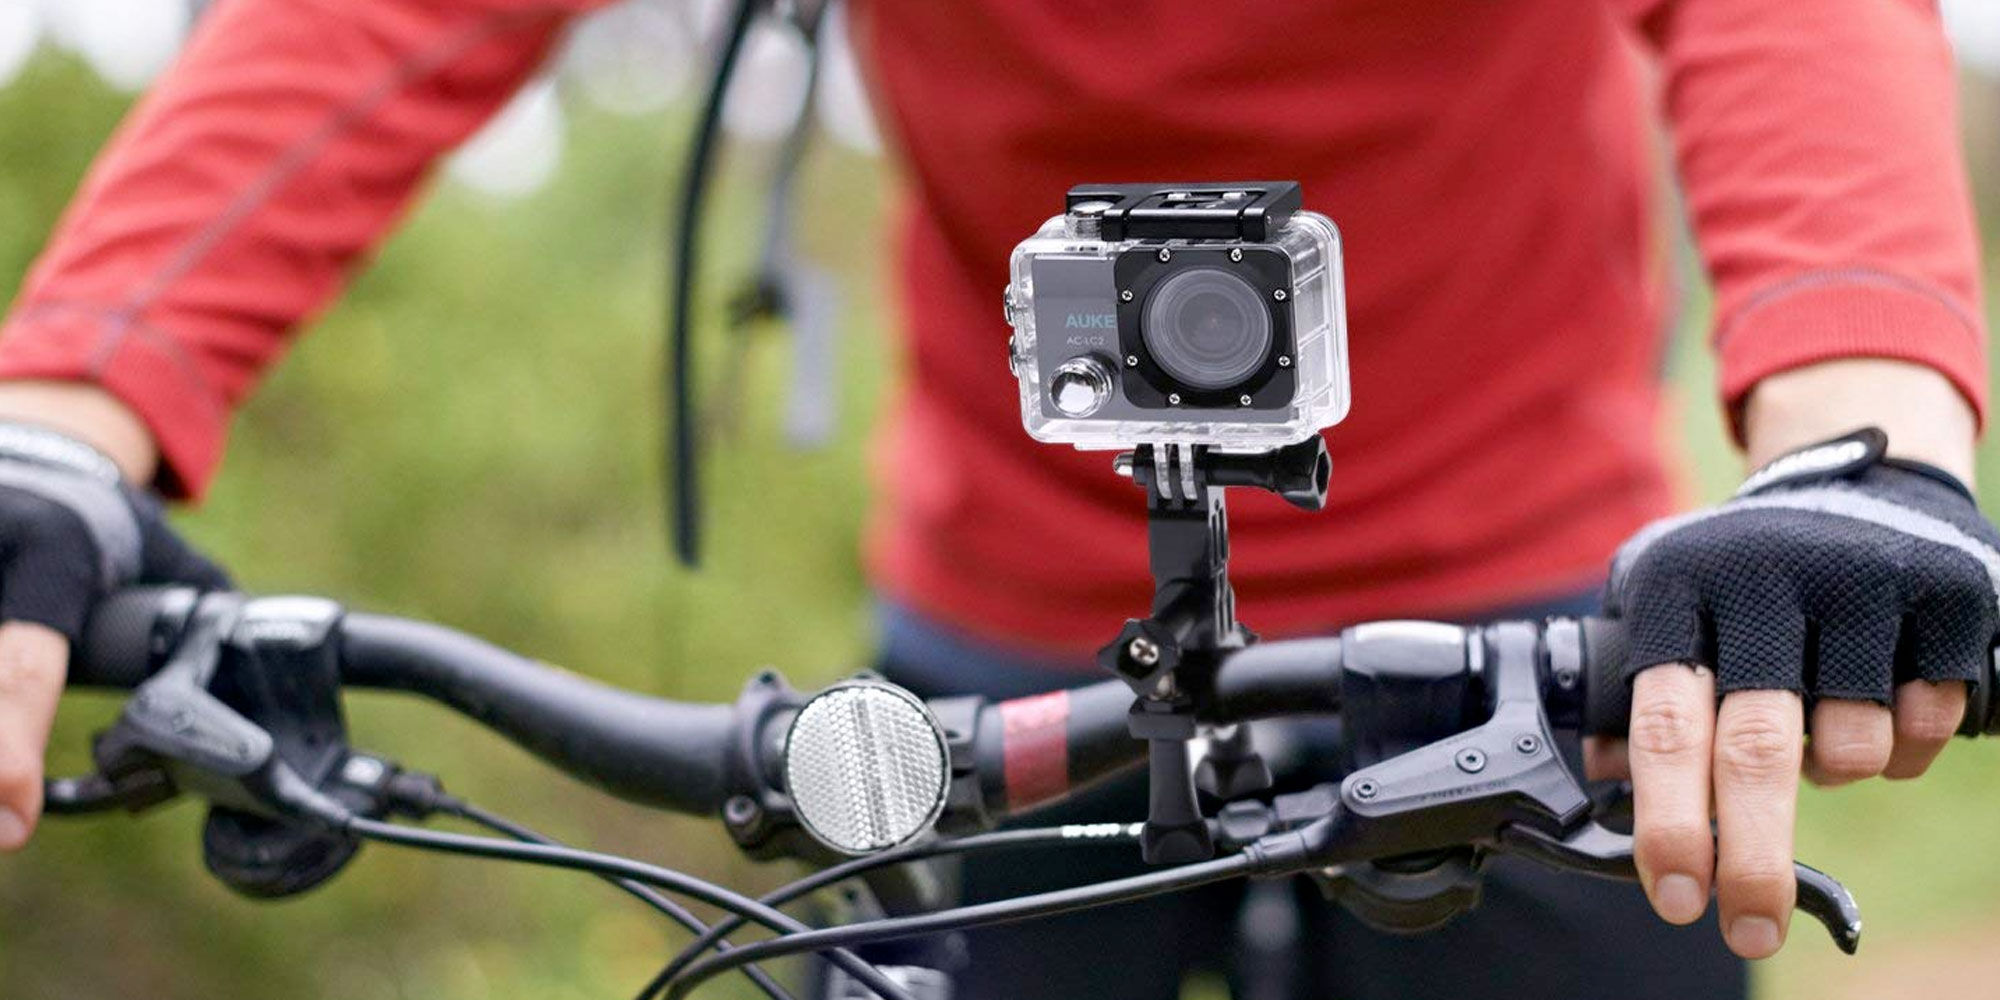 Capture every moment w/ Aukey's Waterproof 4K Action Camera for $50 shipped (All-time low)